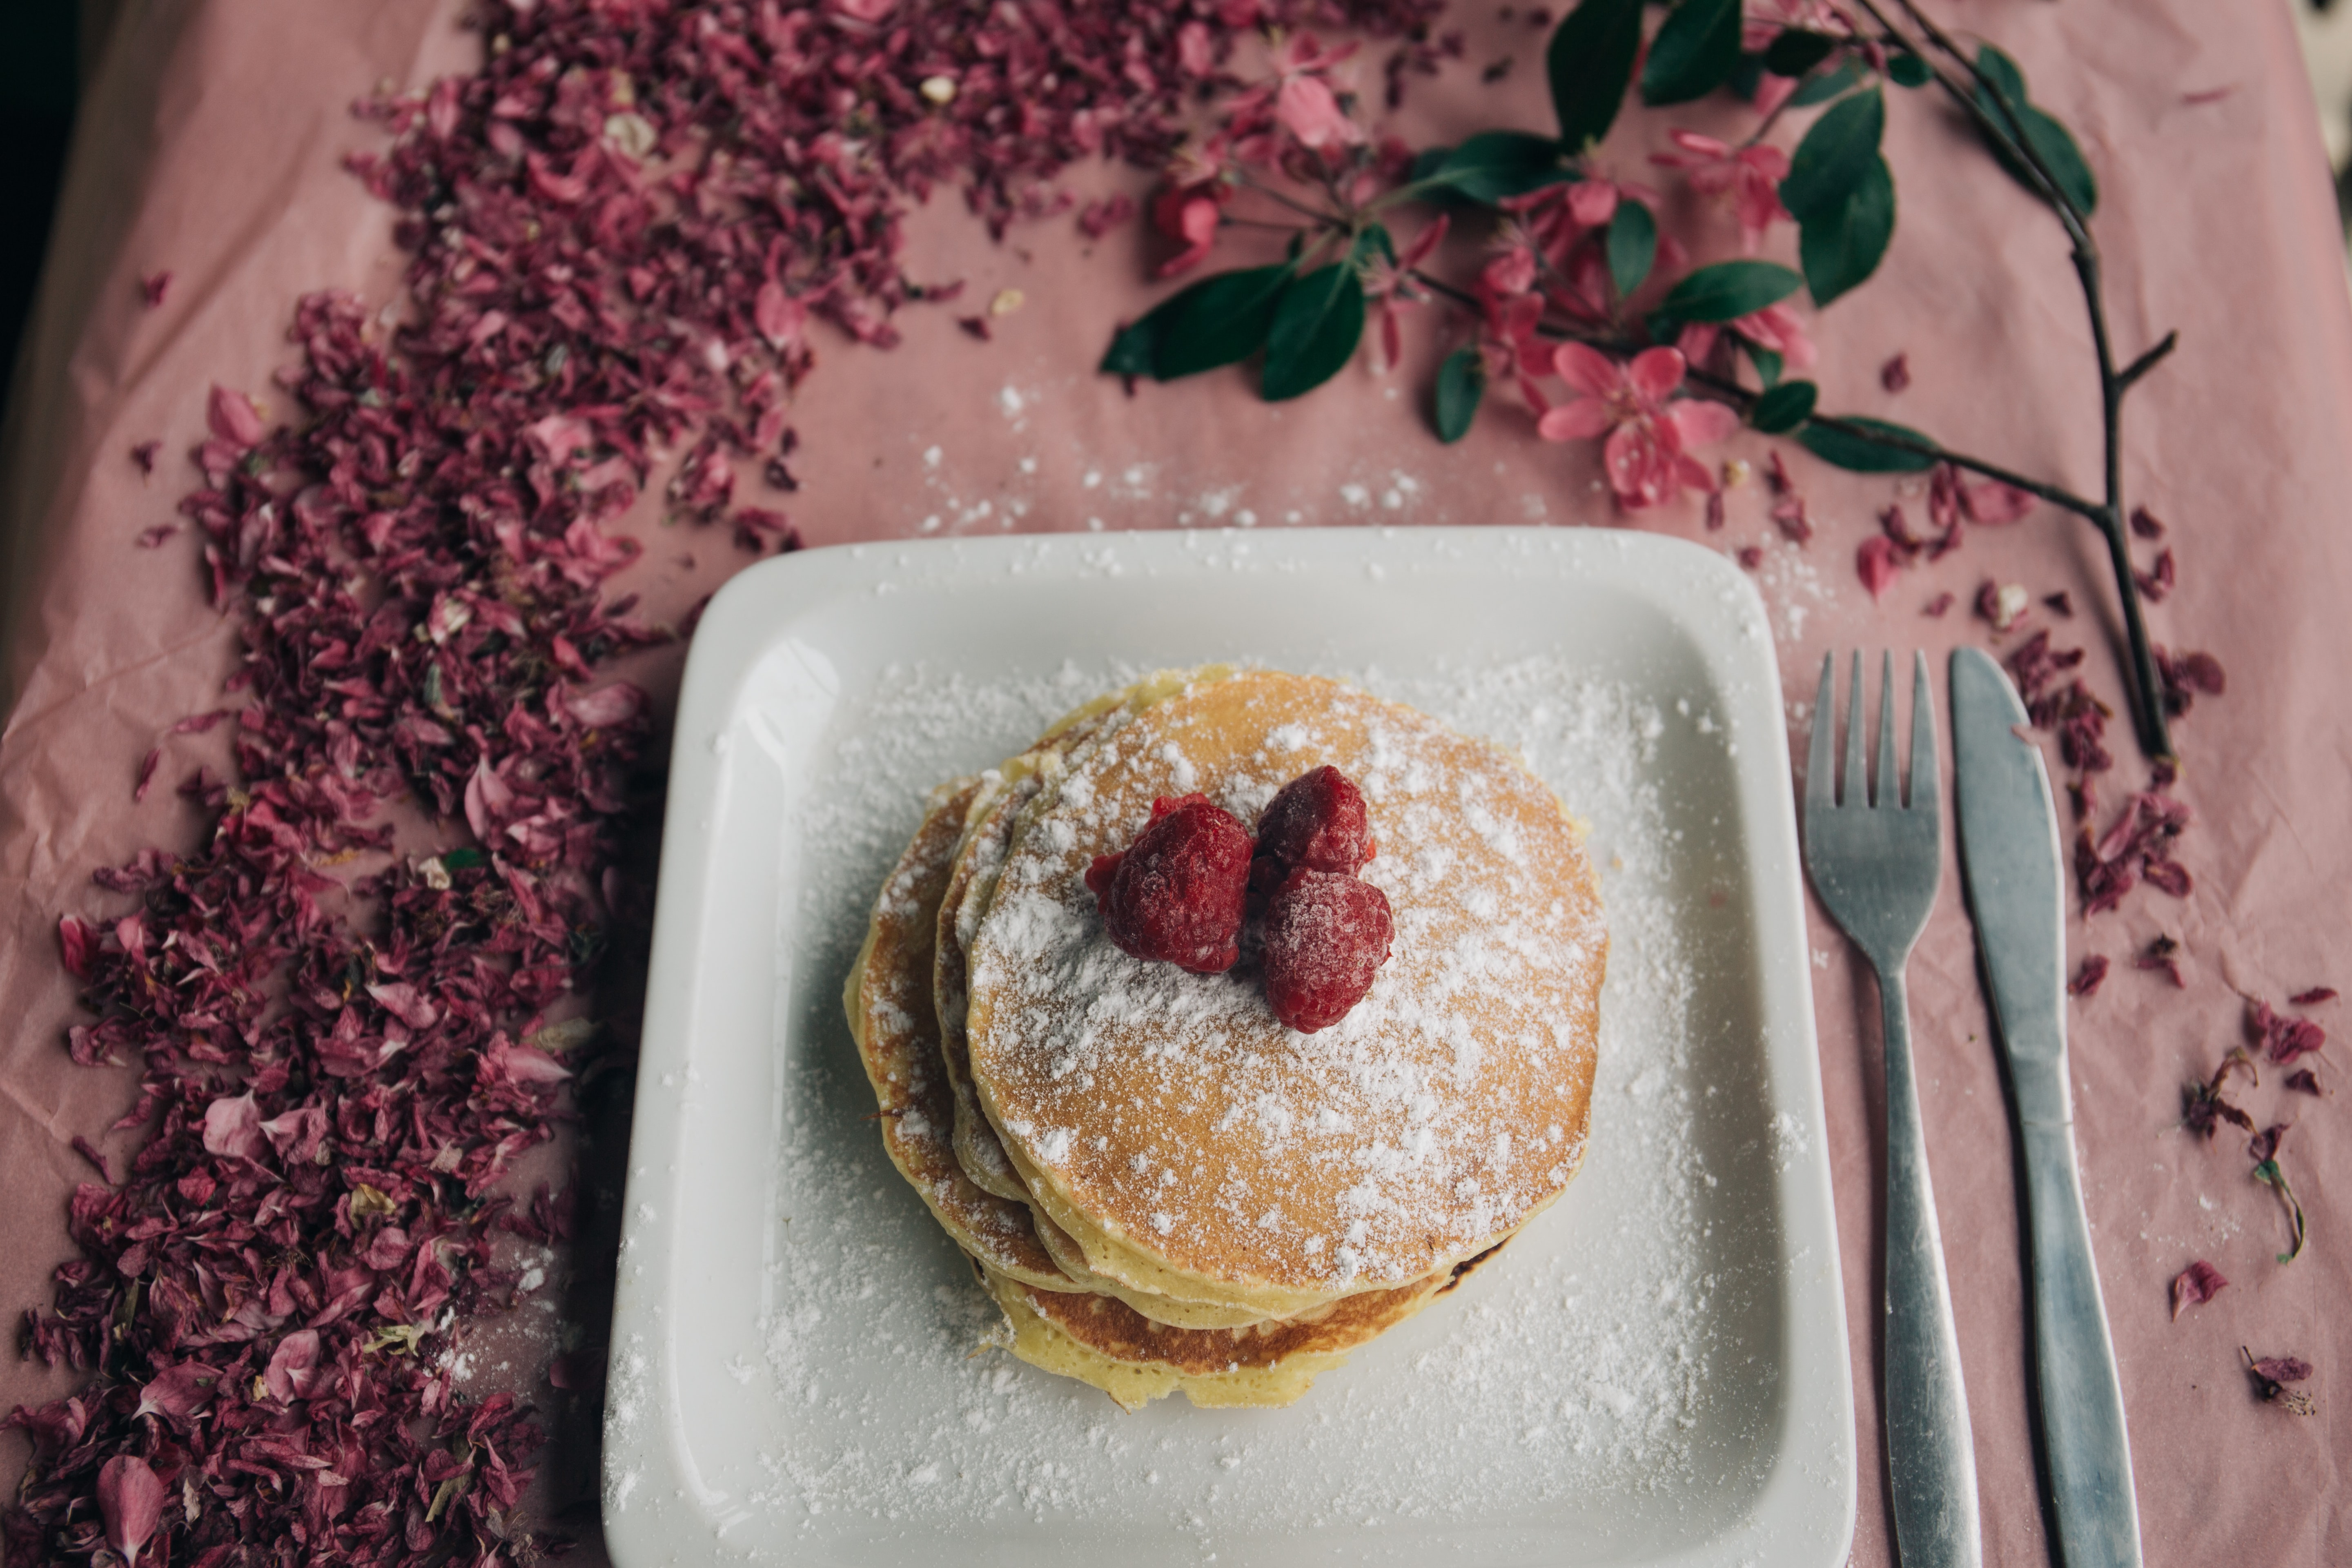 Delicious looking pancakes covered in berries and powdered sugar on a plate that is sitting on a table with flowers on it